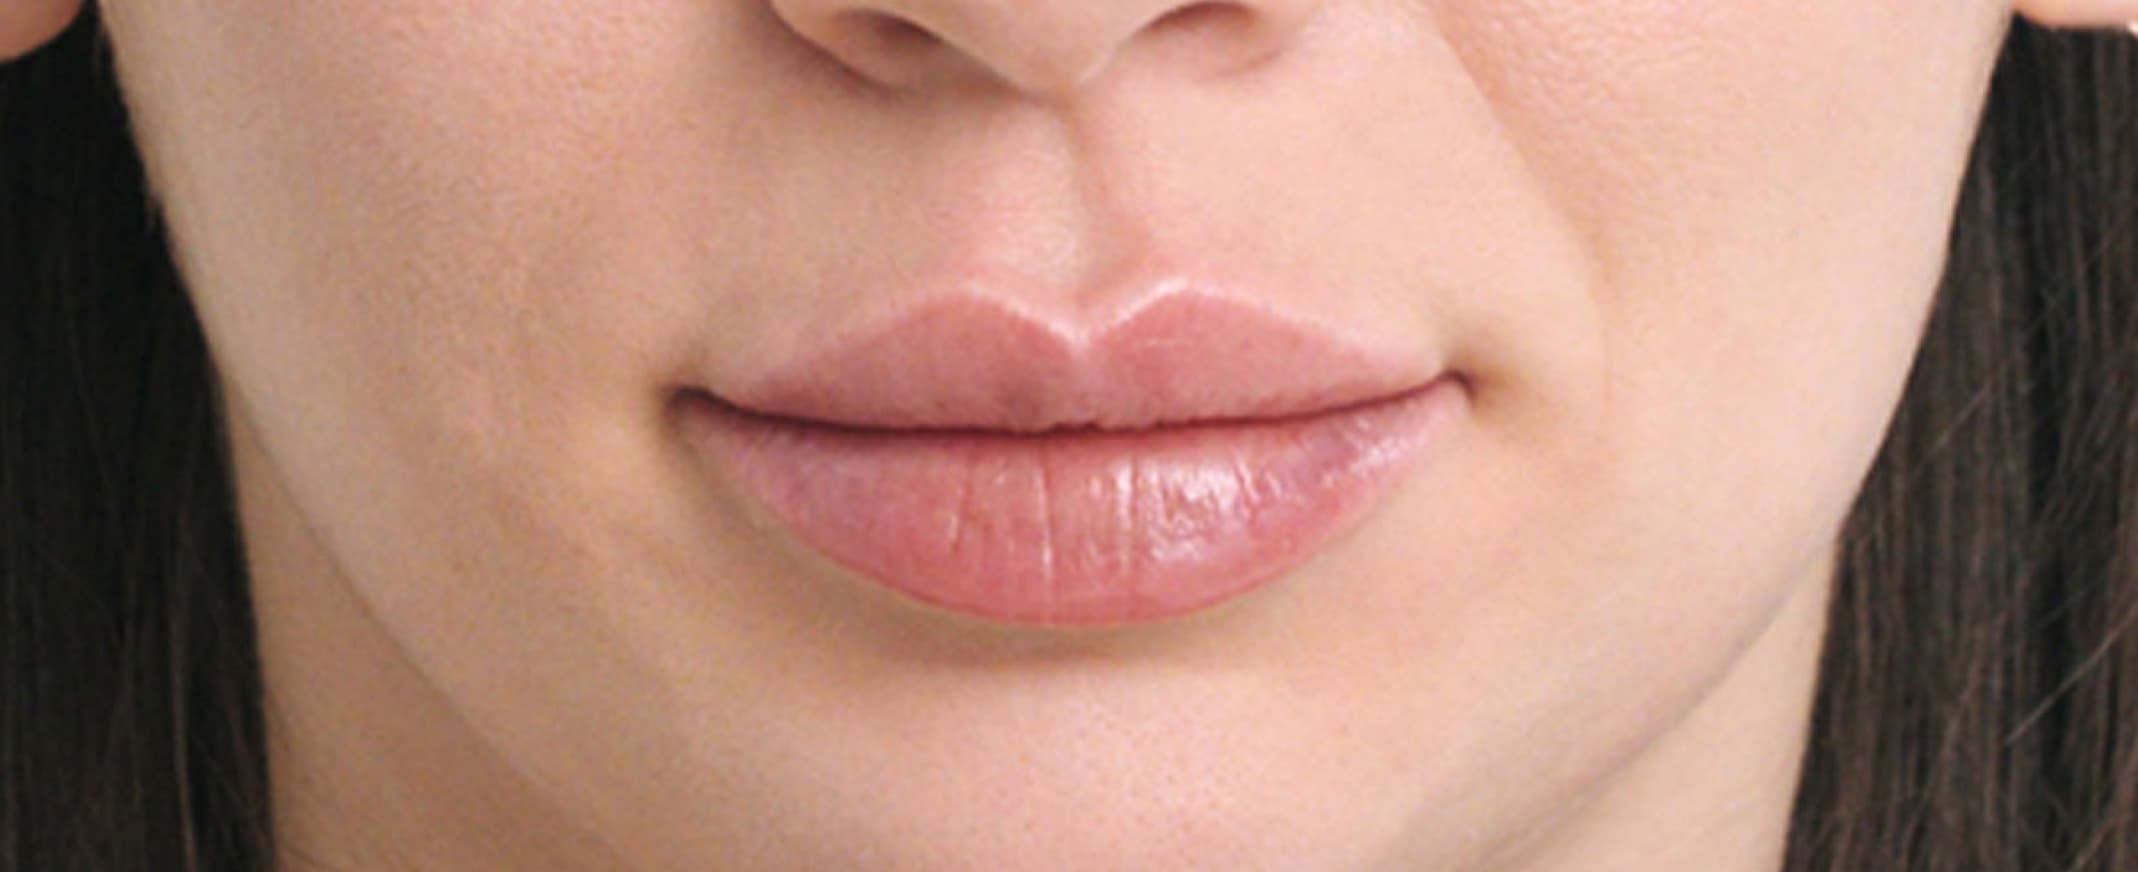 Lip enhancement with Restylane® Kysse